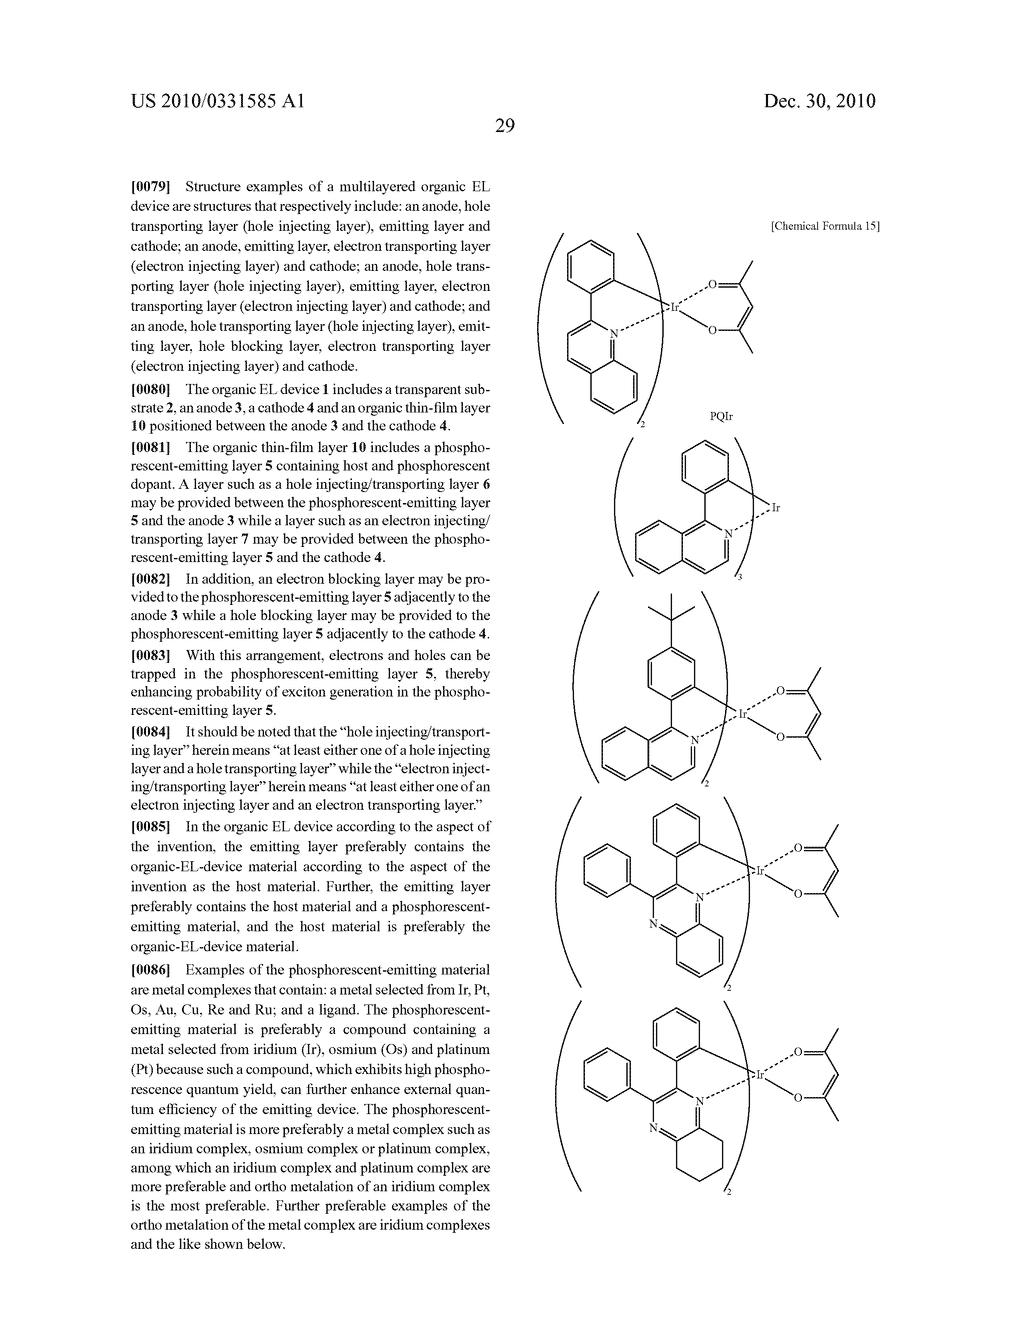 PHENANTHRENE DERIVATIVE, AND MATERIAL FOR ORGANIC EL ELEMENT - diagram, schematic, and image 30